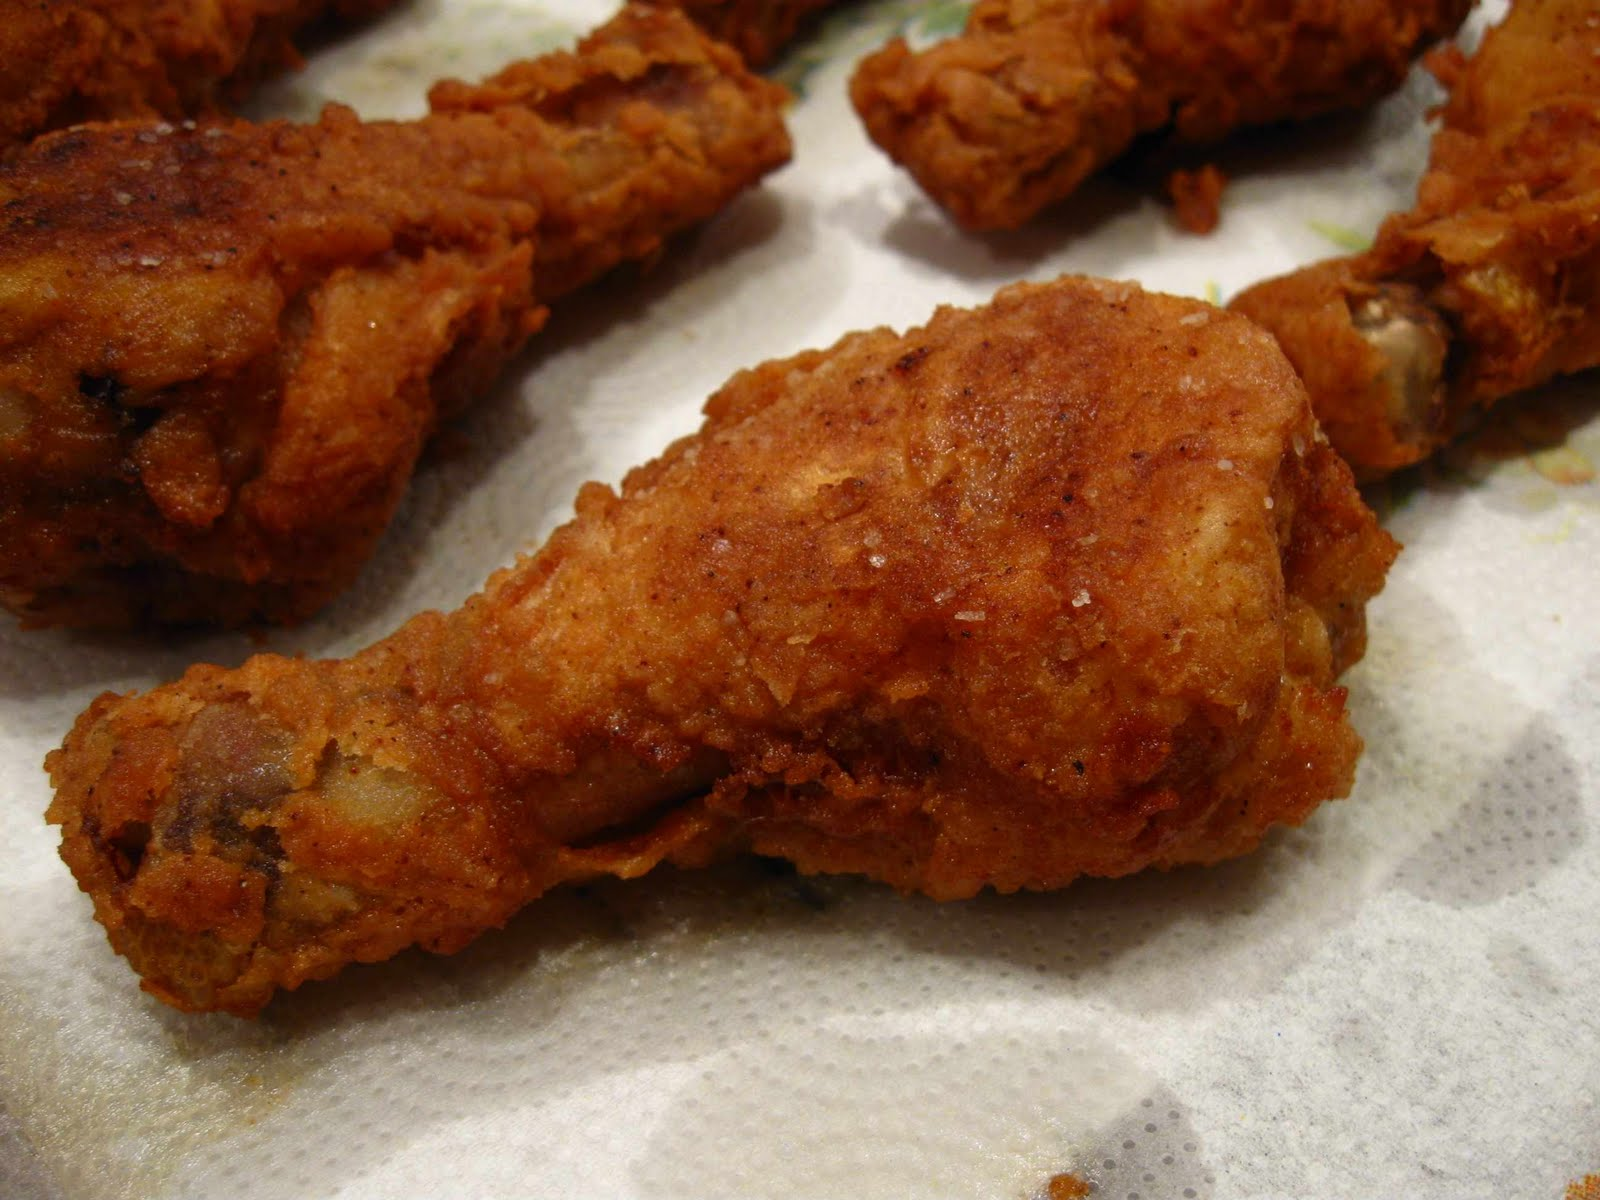 ... fried chicken does not taste the same as store bought fried chicken